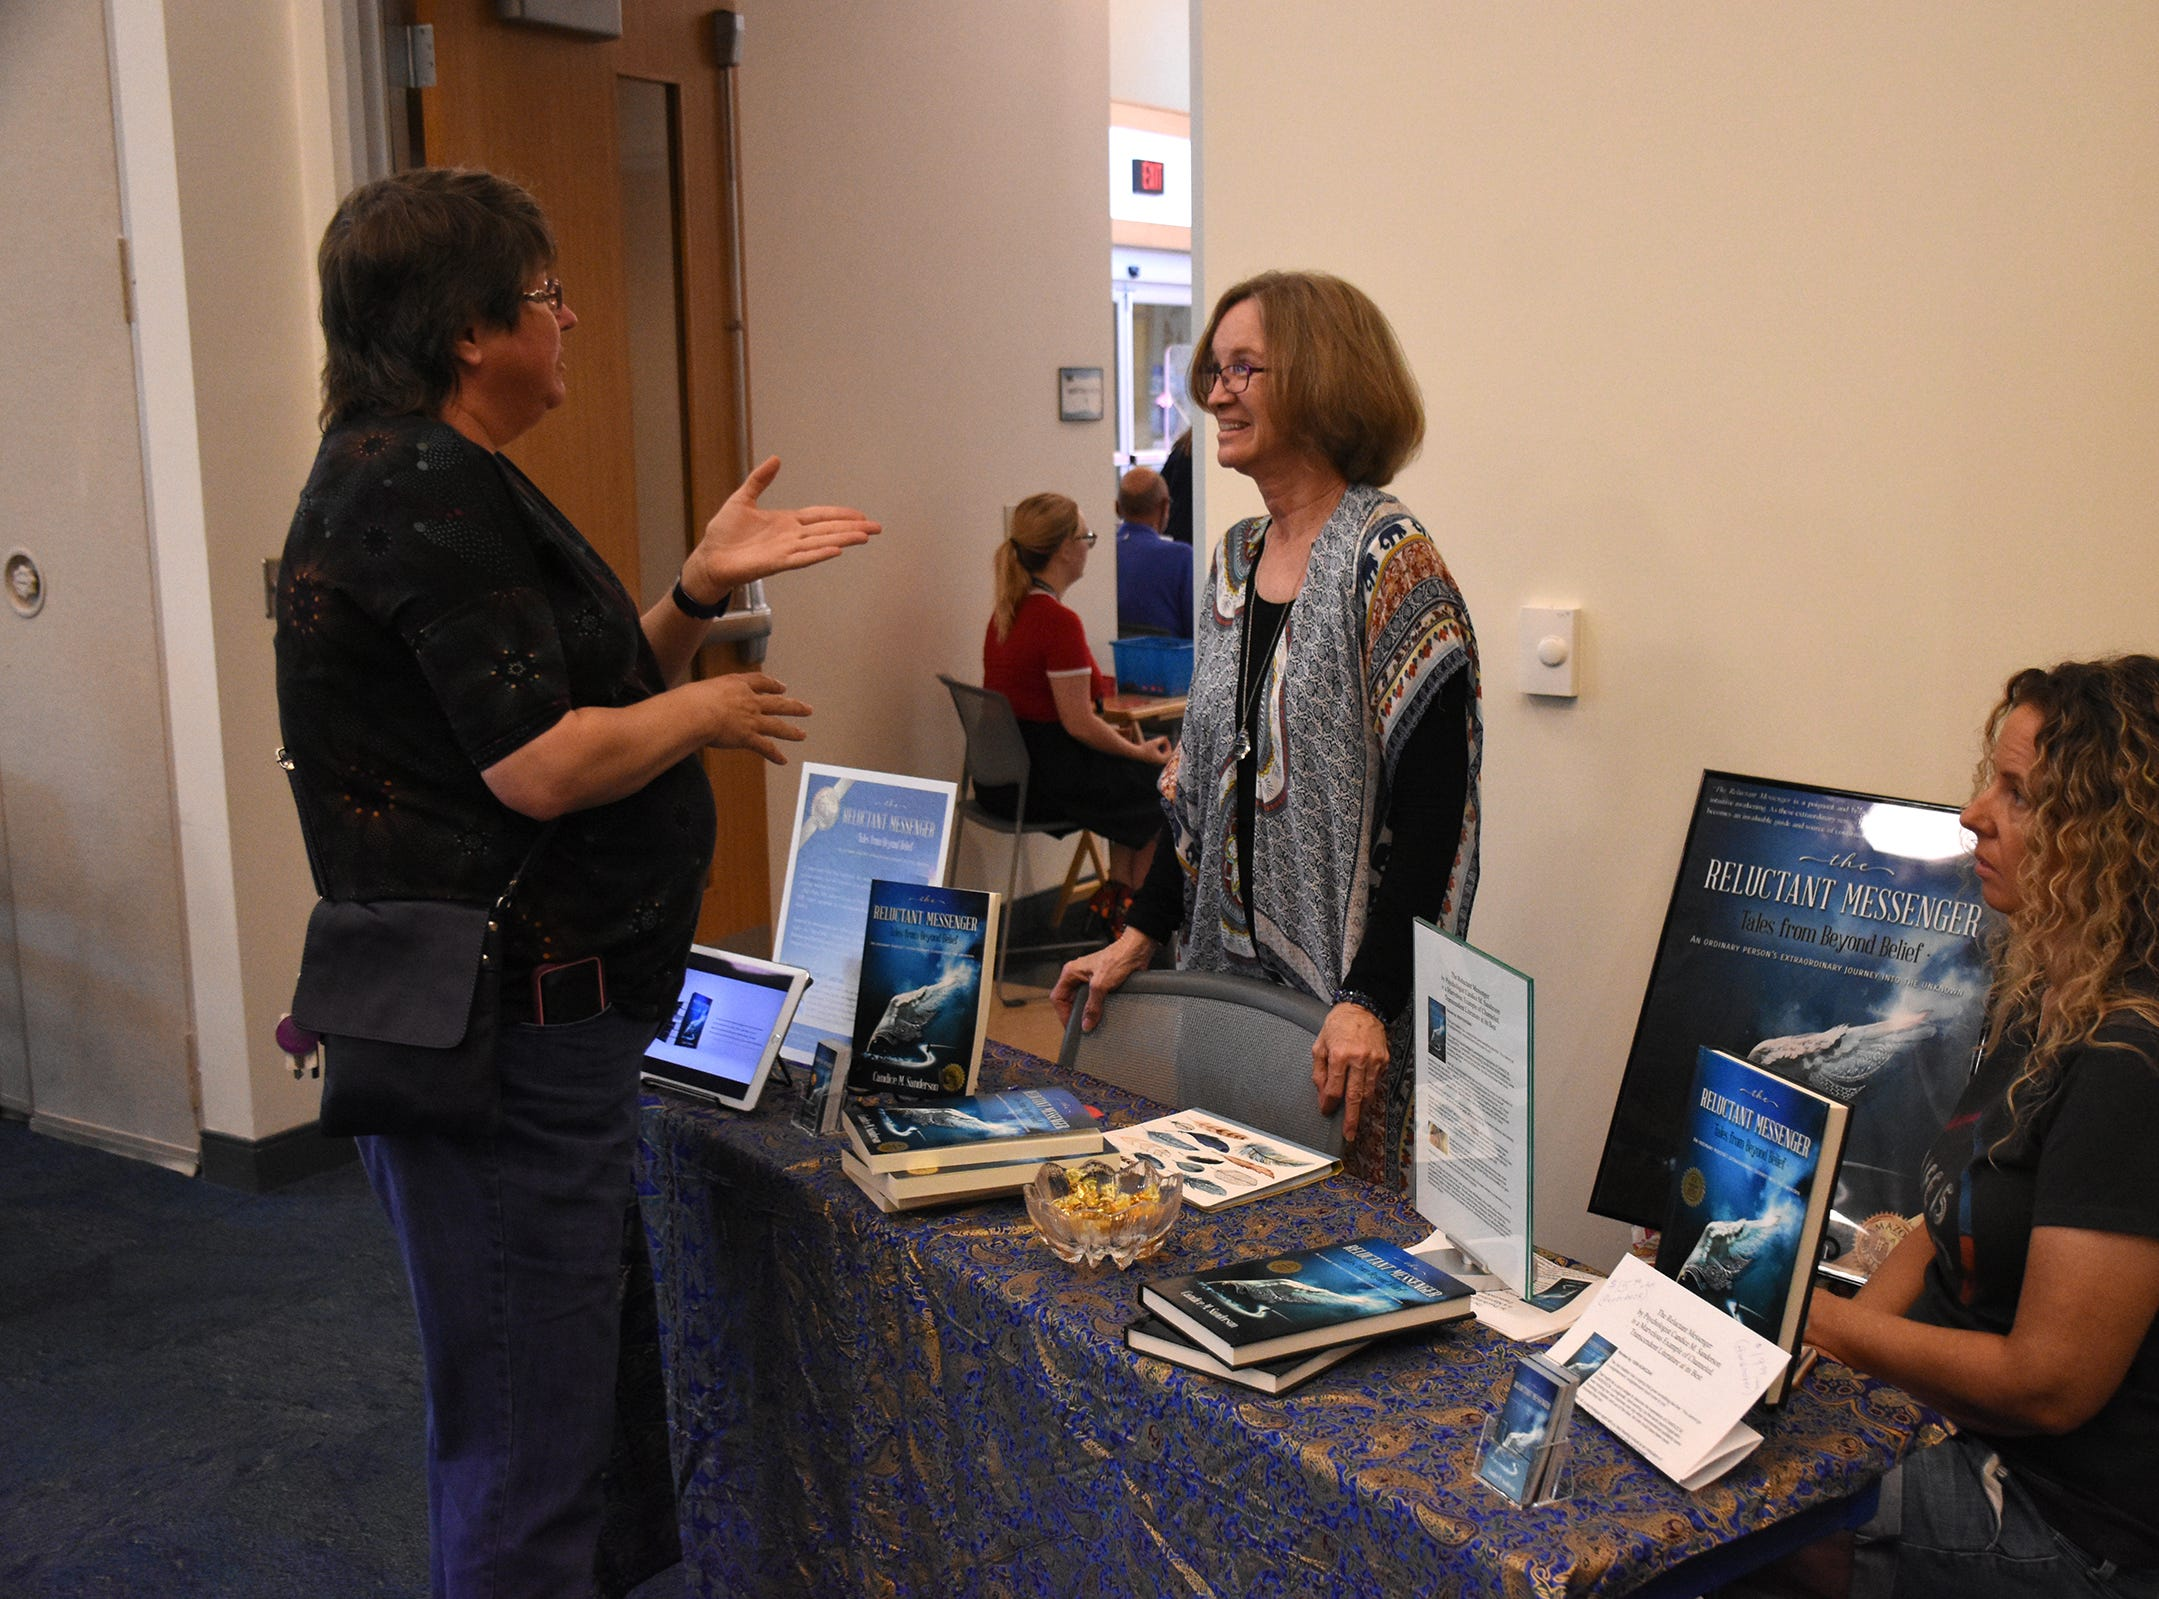 Author Candice Sanderson, center, speaks with Connie Bettinger. The Collier County public library system hosted an author fair Nov. 10 at the South Regional library branch, with nearly four dozen local writers and talks from two eminent authors.